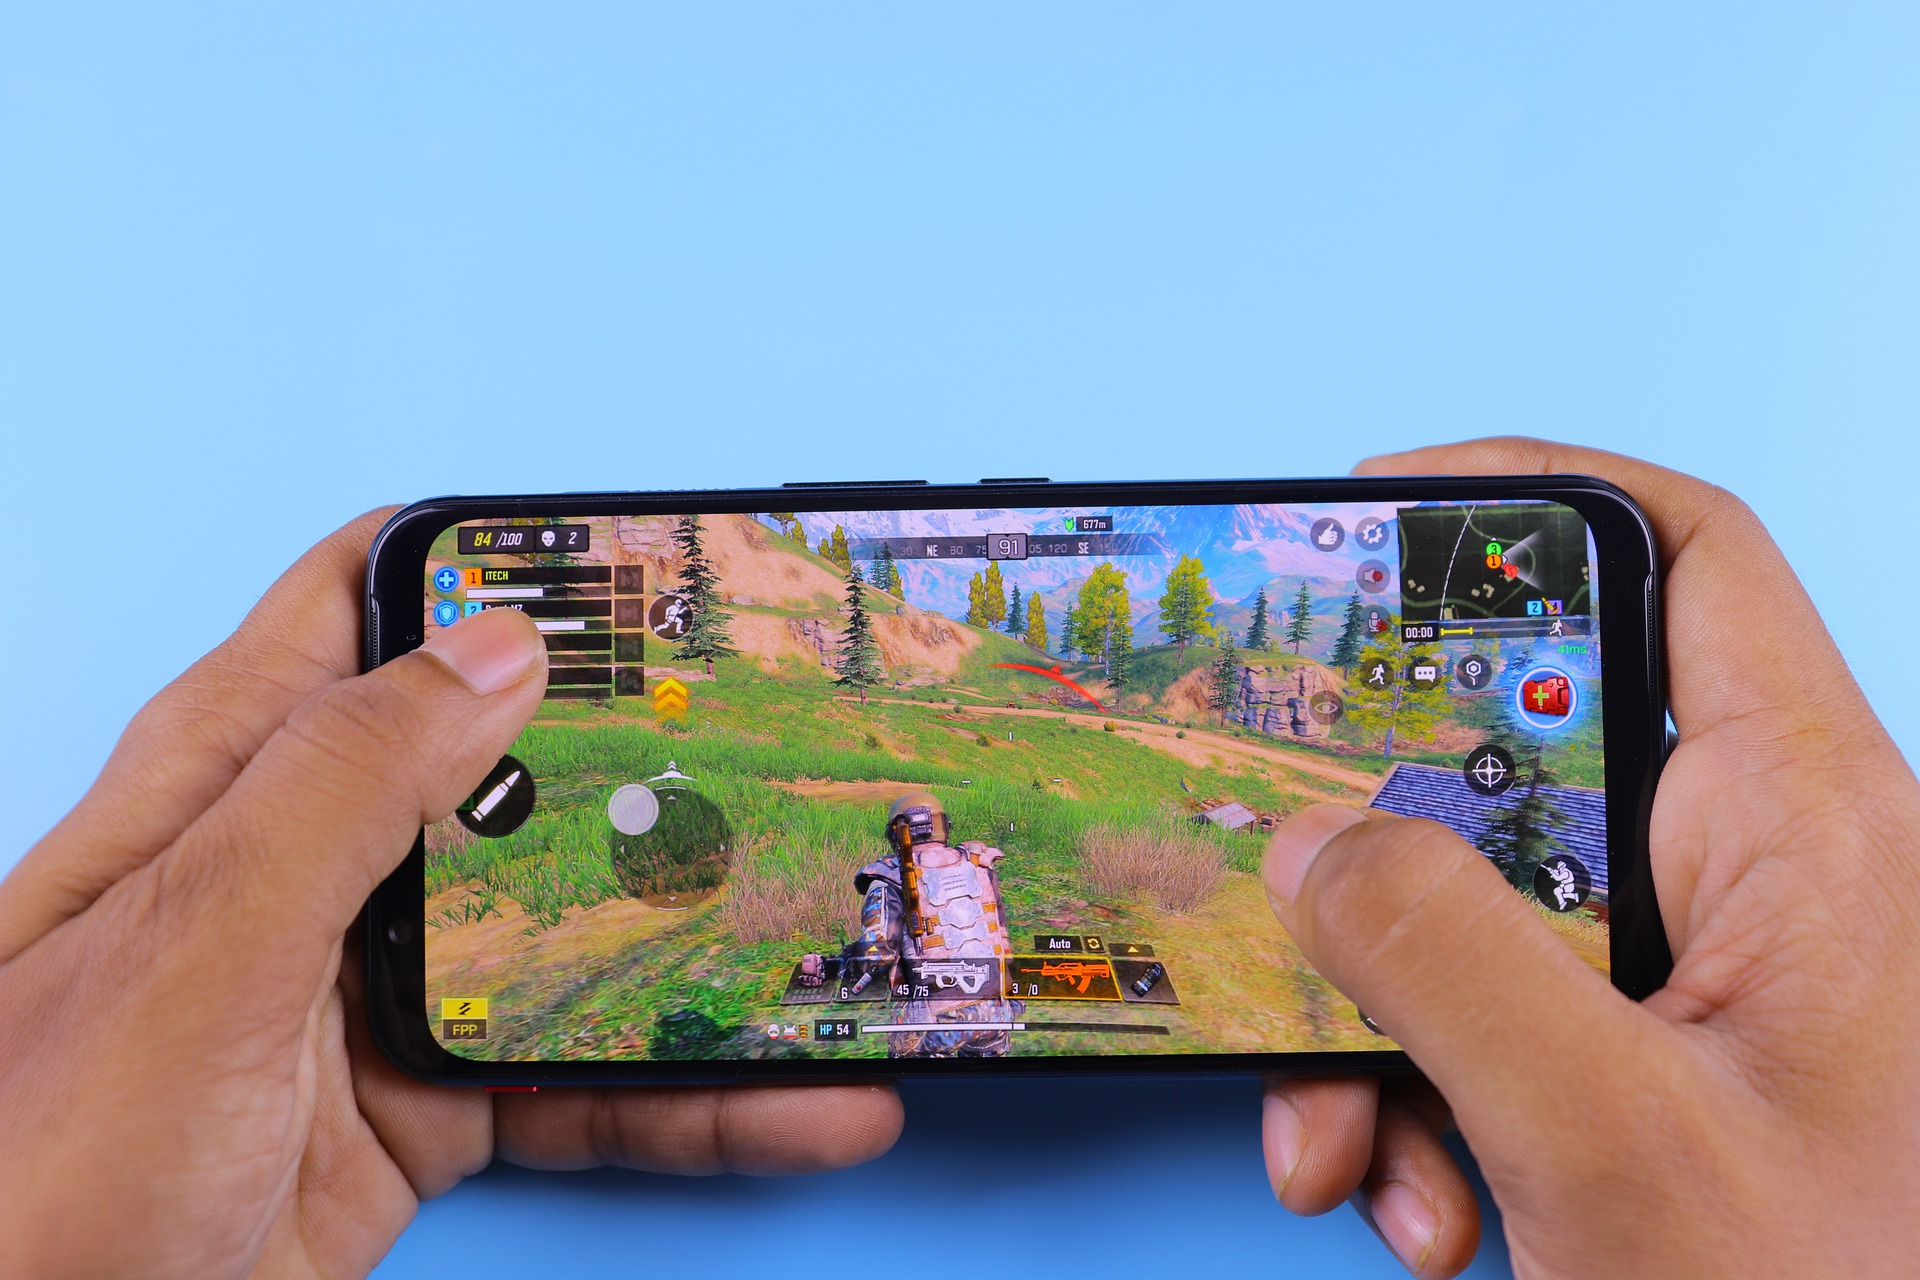 Why Are Android Games So Popular Today